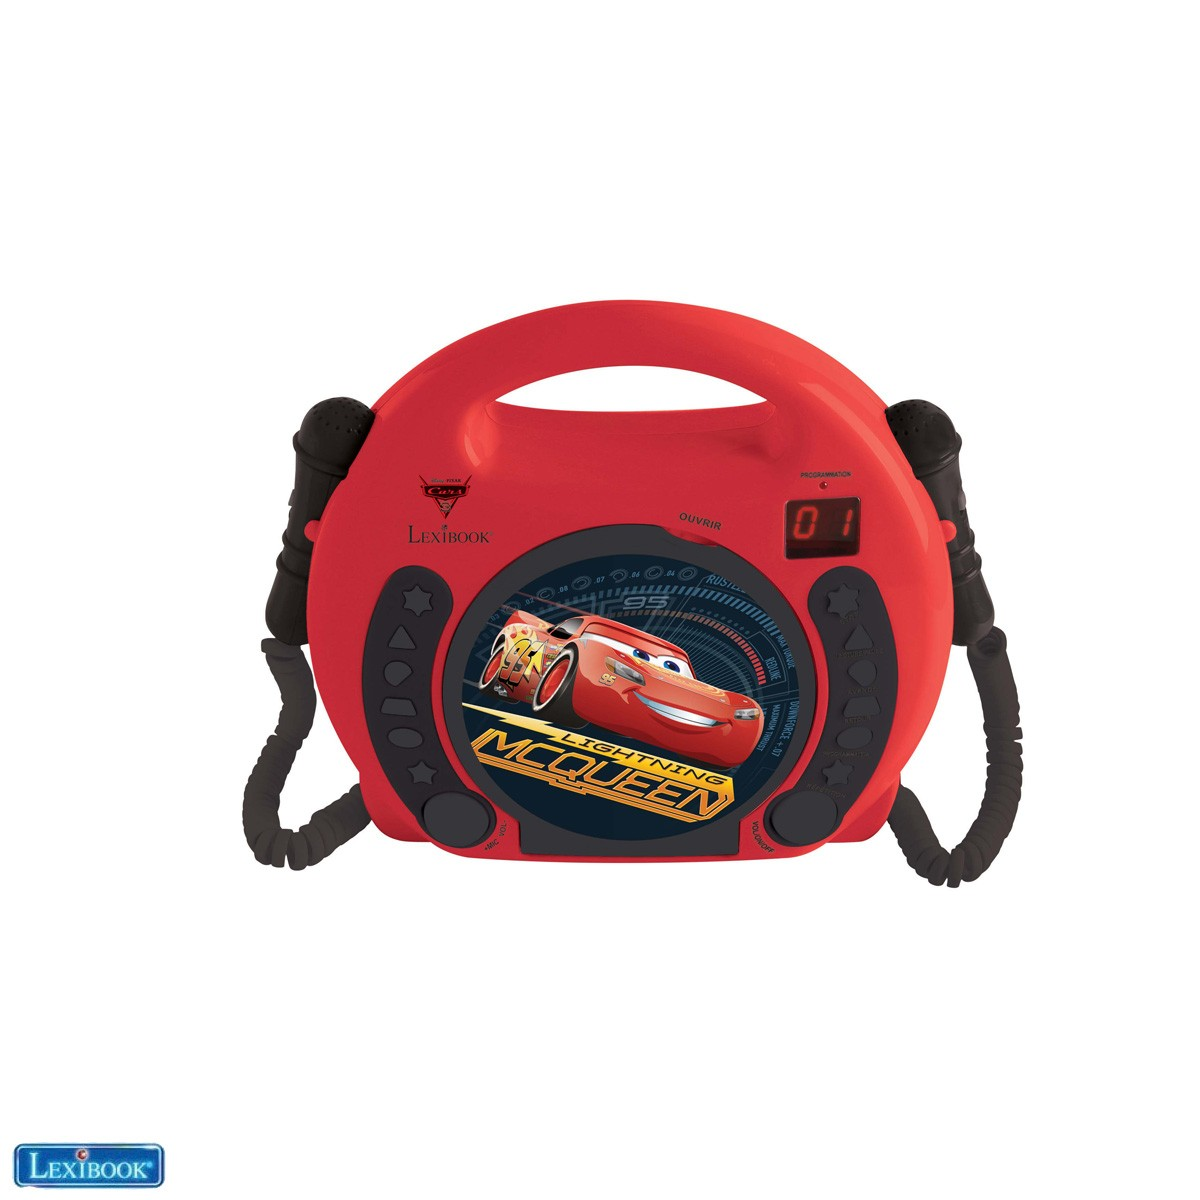 Cars 3 CD player